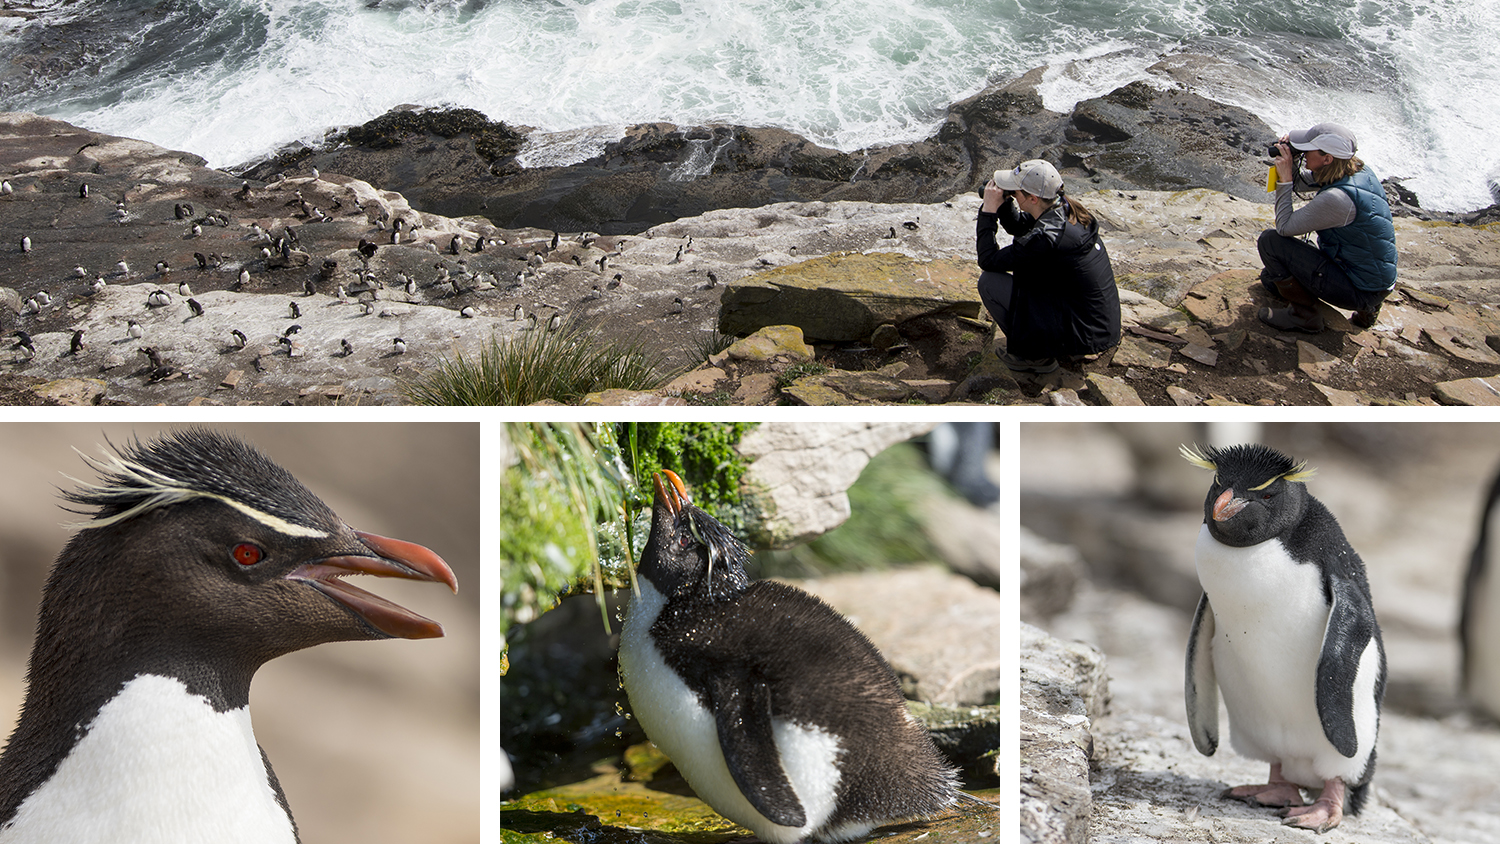 Detail images of Southern rockhopper penguins, Saunders Island